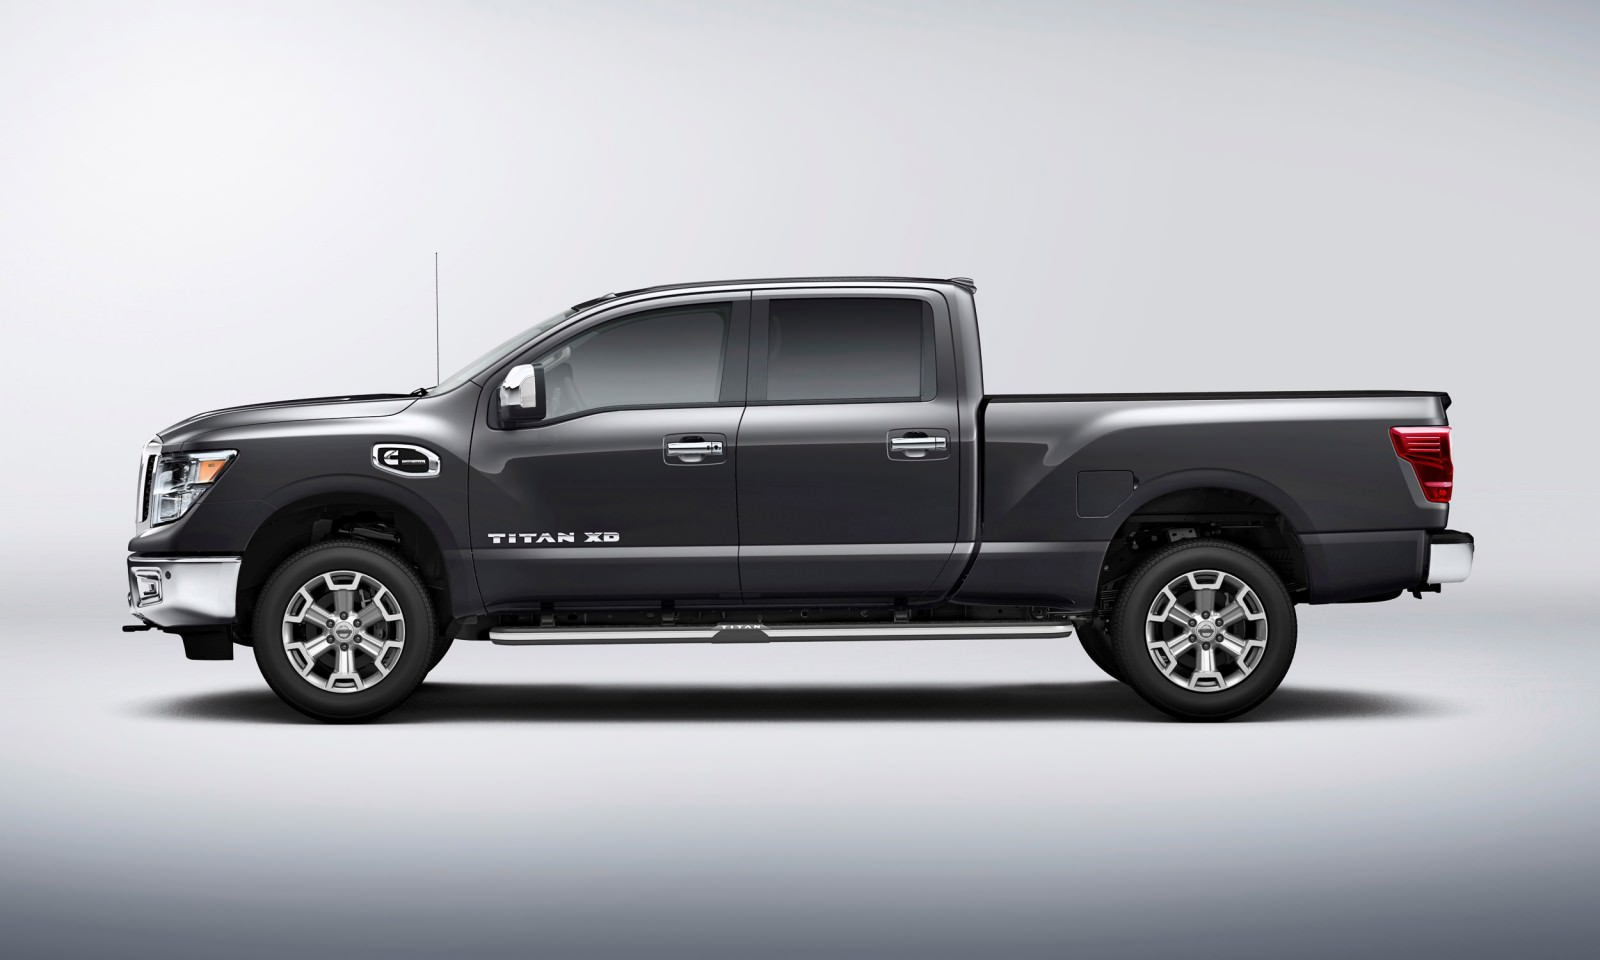 2016 Nissan Titan XD (production model not shown)